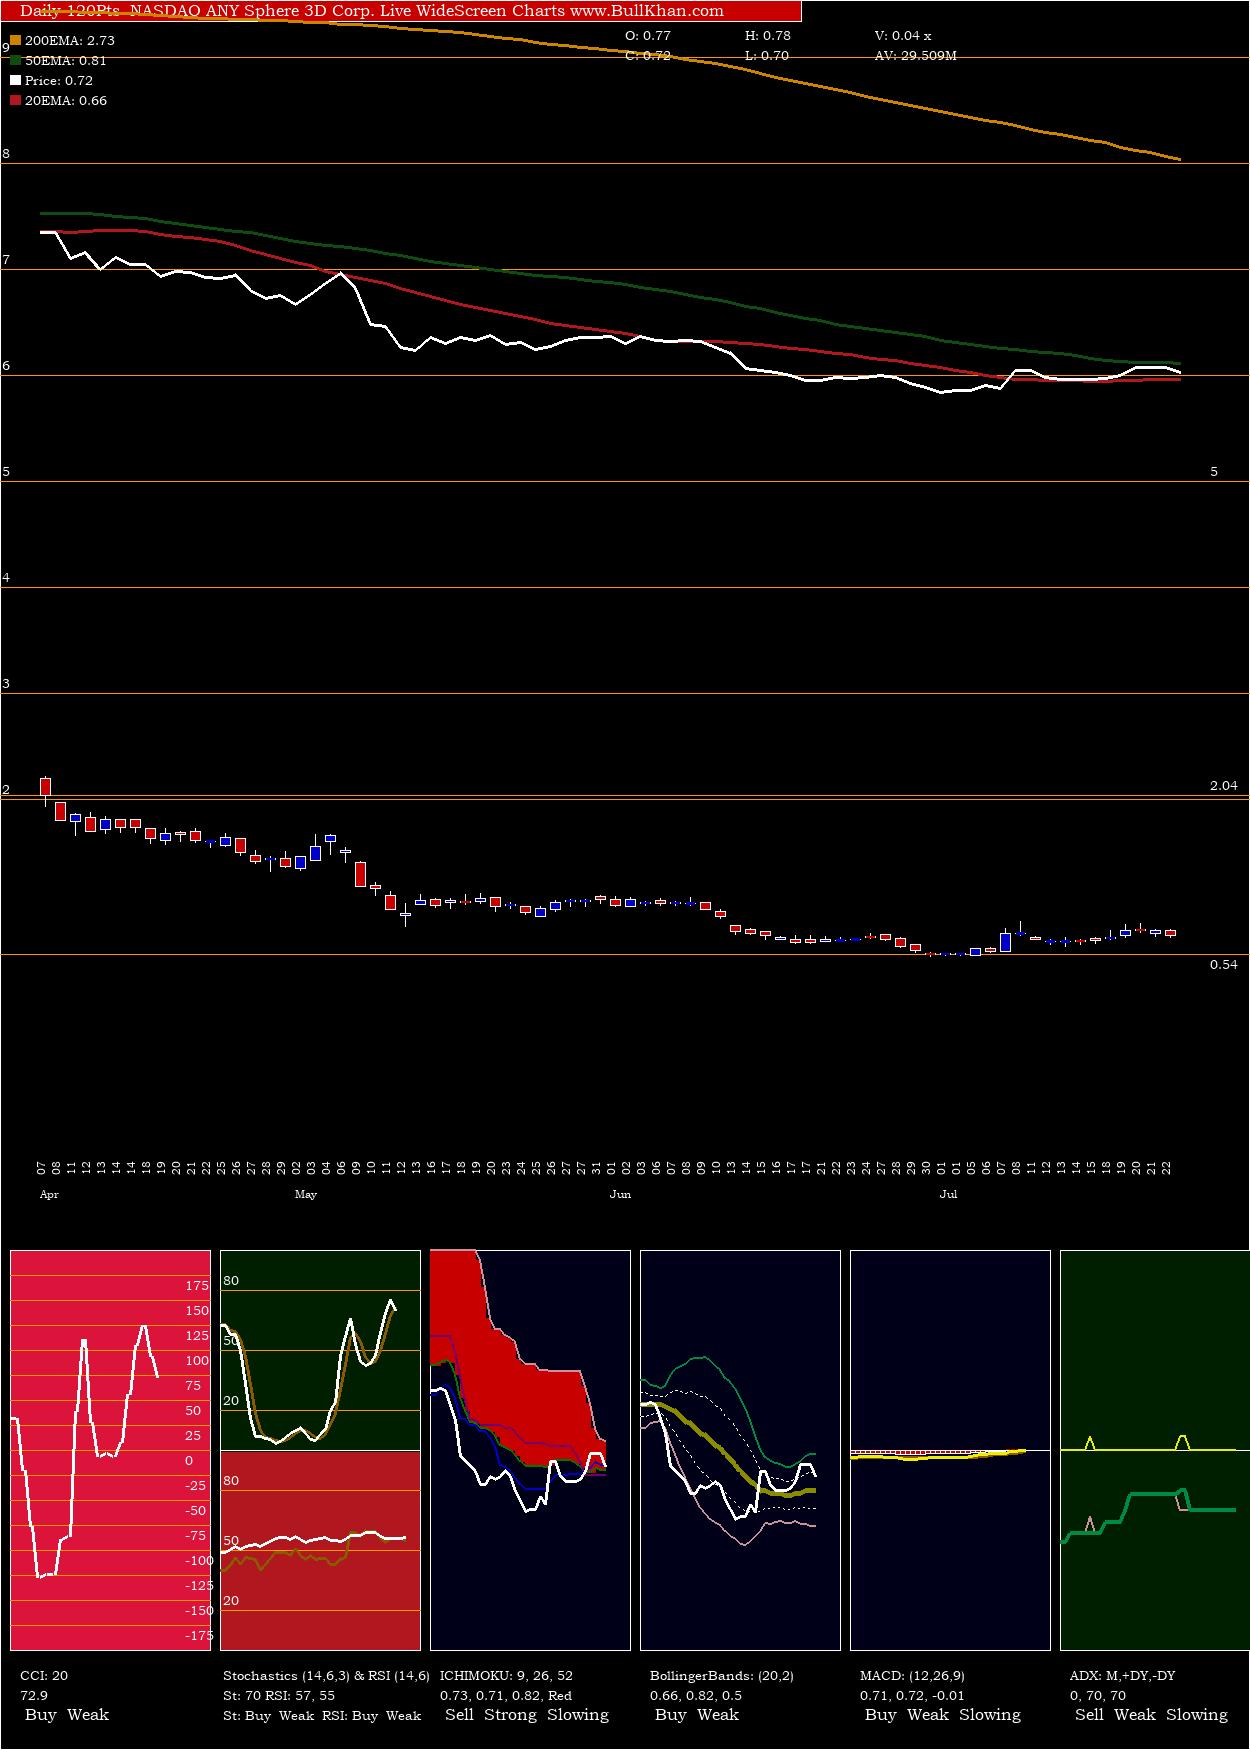 Sphere 3D Corp. charts and indicators